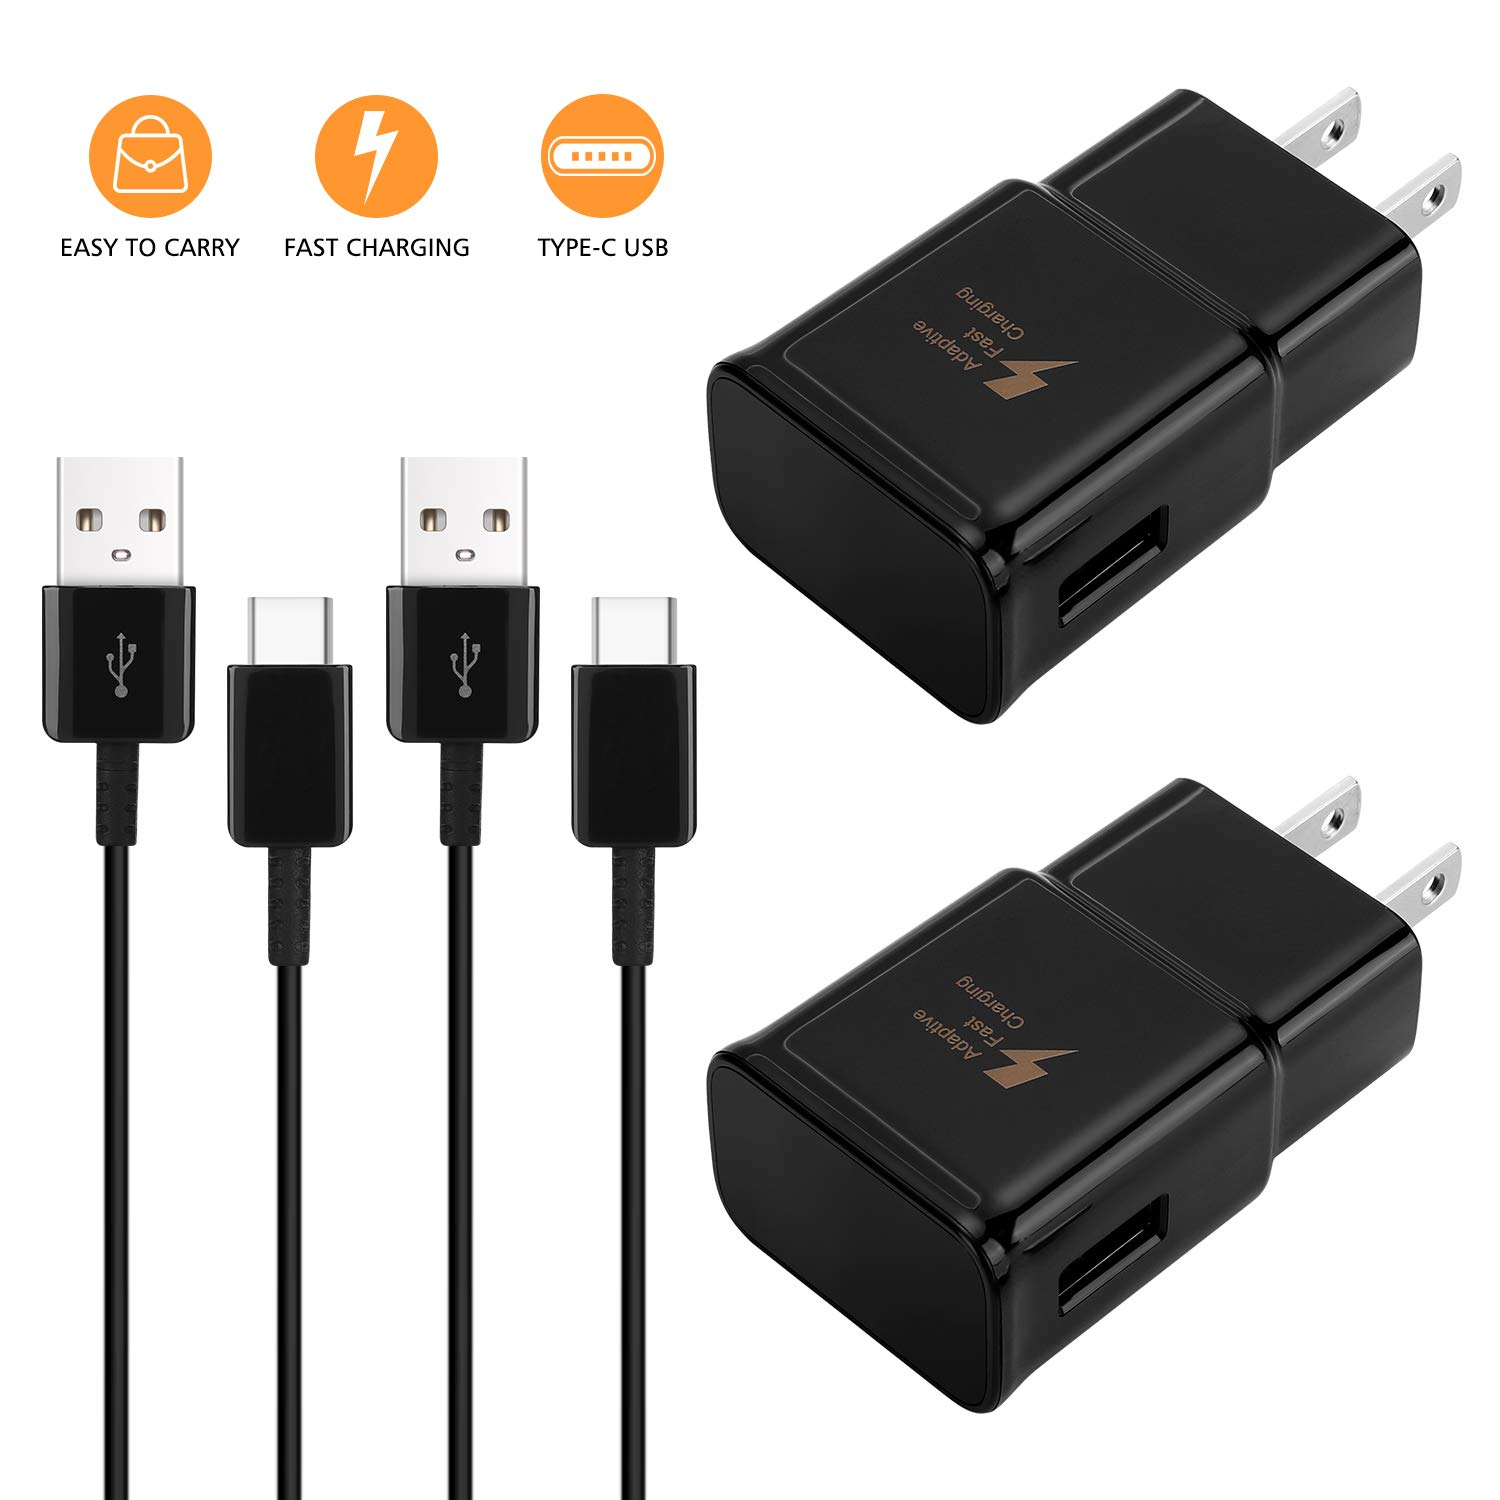 Adaptive Fast Wall Charger Adapter Compatible Samsung Galaxy S10 S9 S8 /Edge/Plus/Active,Note 9,Note 8,c9pro,LG G5 G6 G7 V20 V30 ThinQ Plus EP-TA with USB Type C to A Cable Cord by DiHines